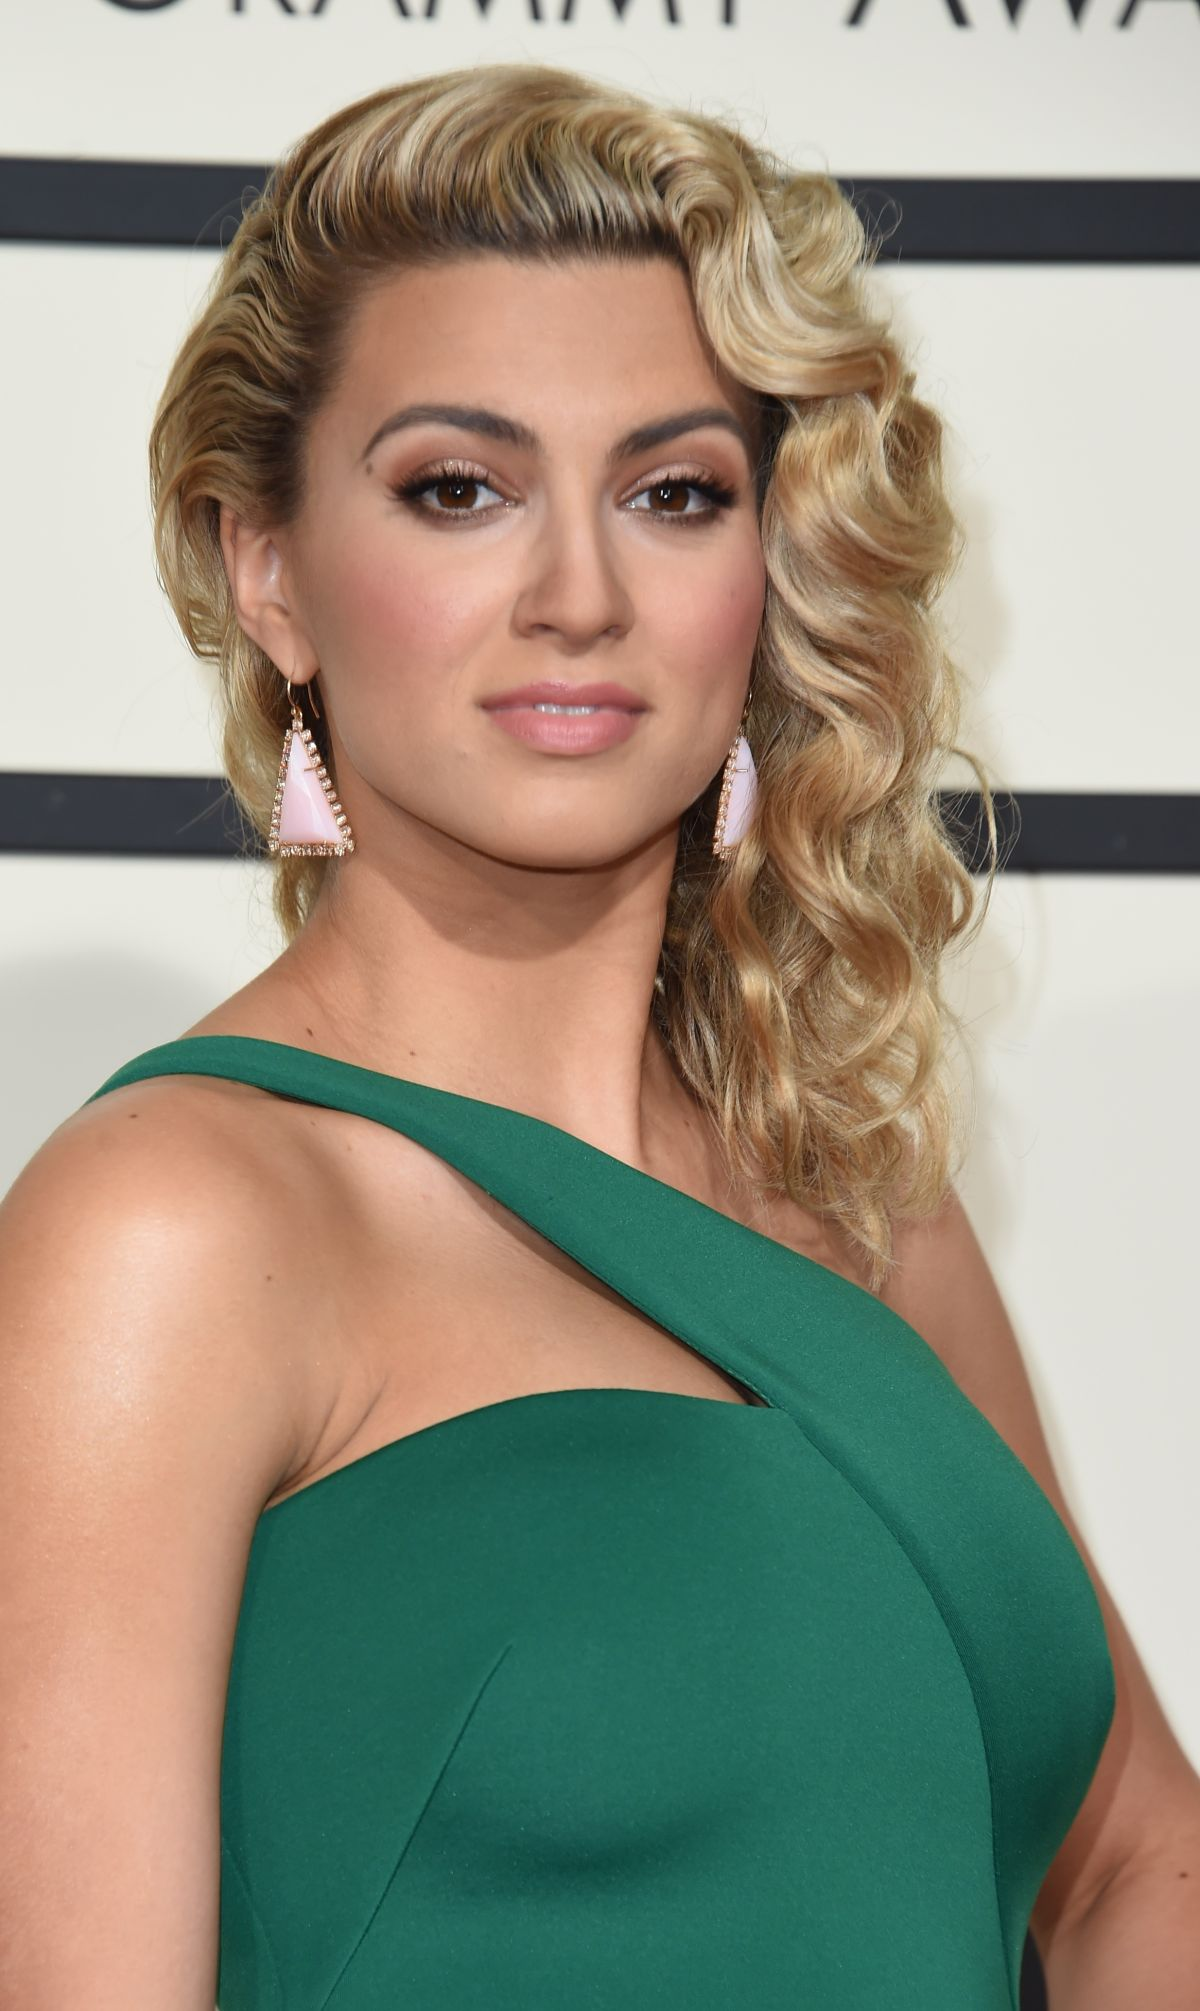 TORI KELLY at Grammy Awards 2016 in Los Angeles 02/15/2016